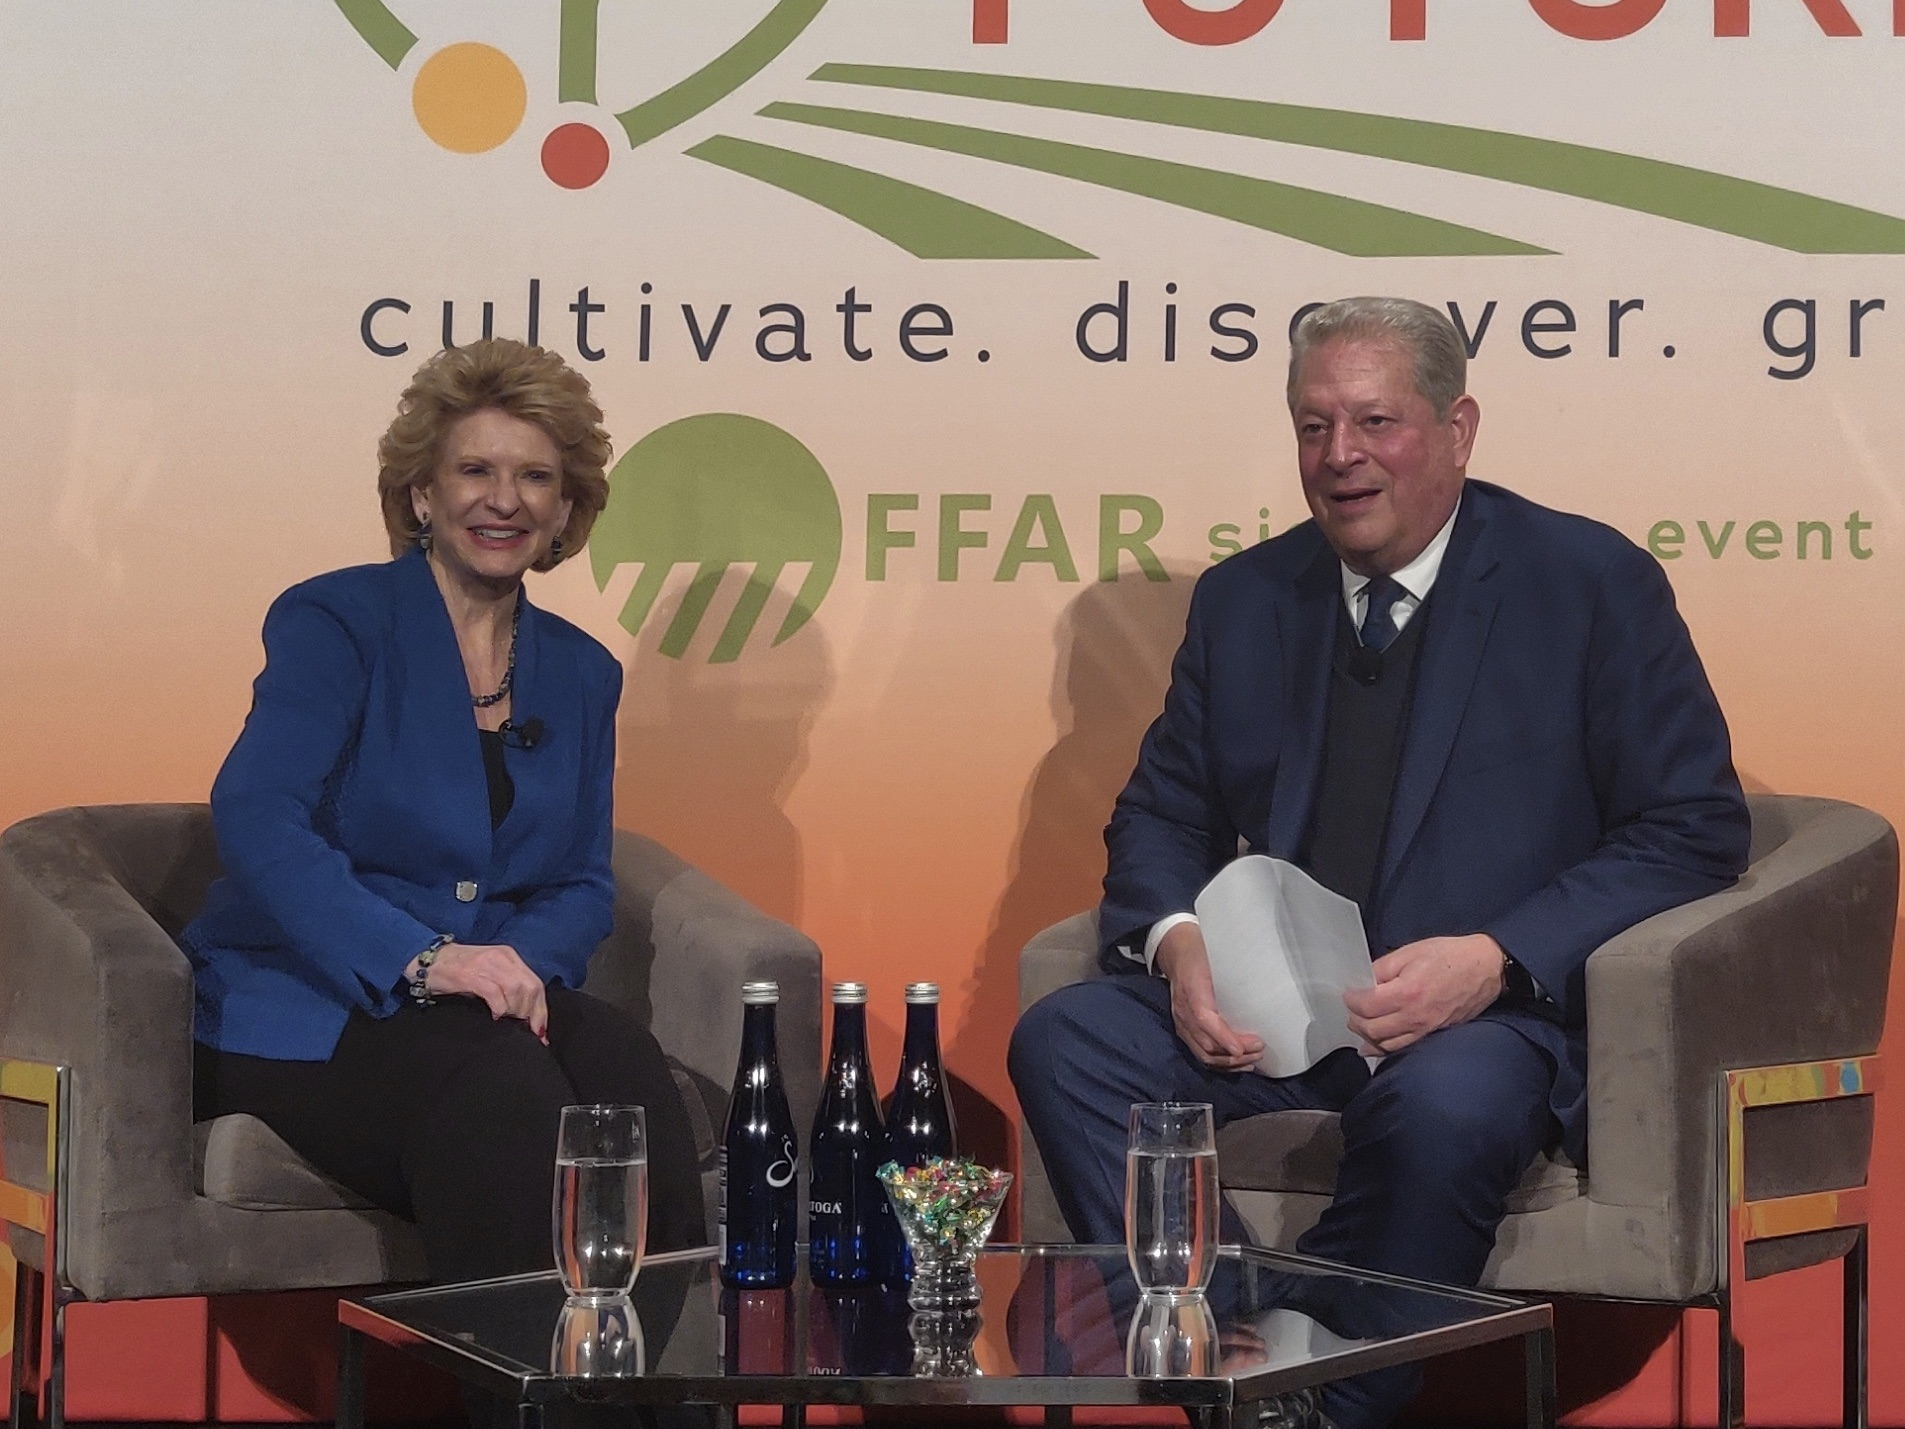 Stabenow-Al Gore Foster our Future 2020